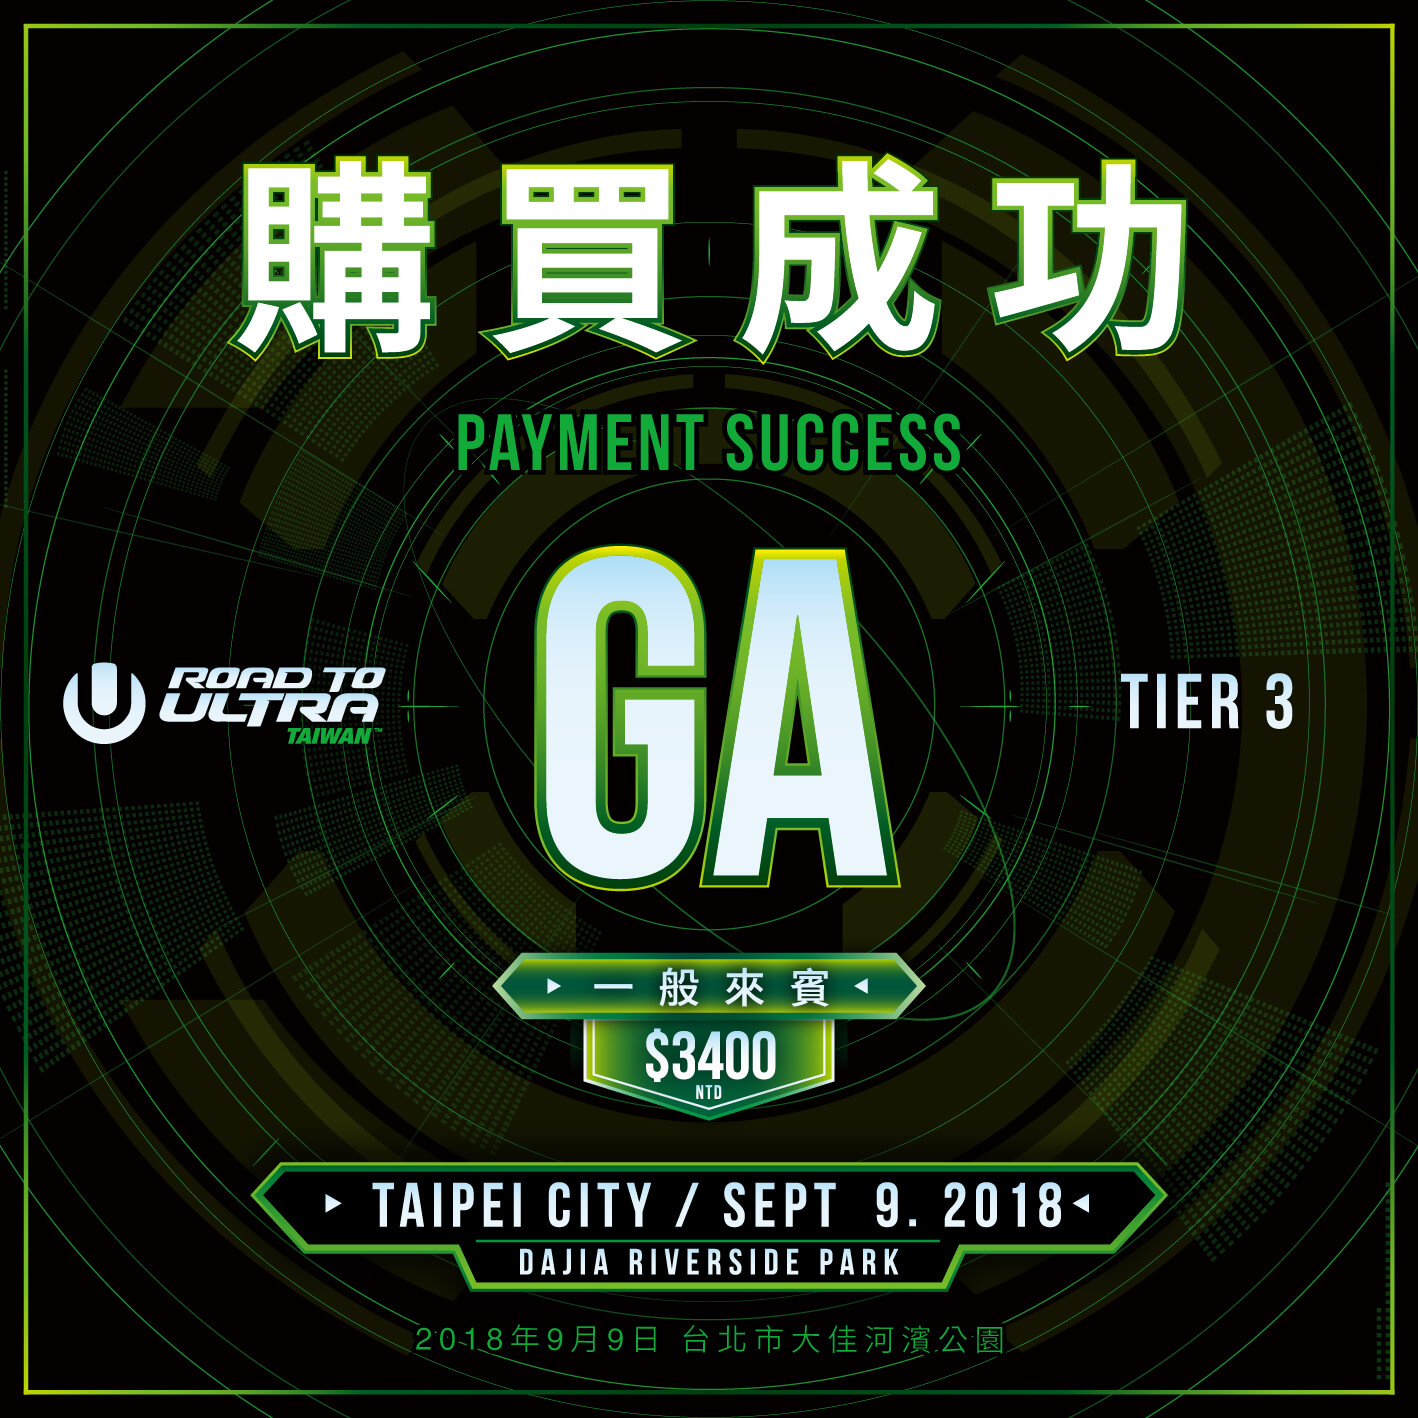 Road To Ultra Taiwan 2018 – GA 1 Day Ticket